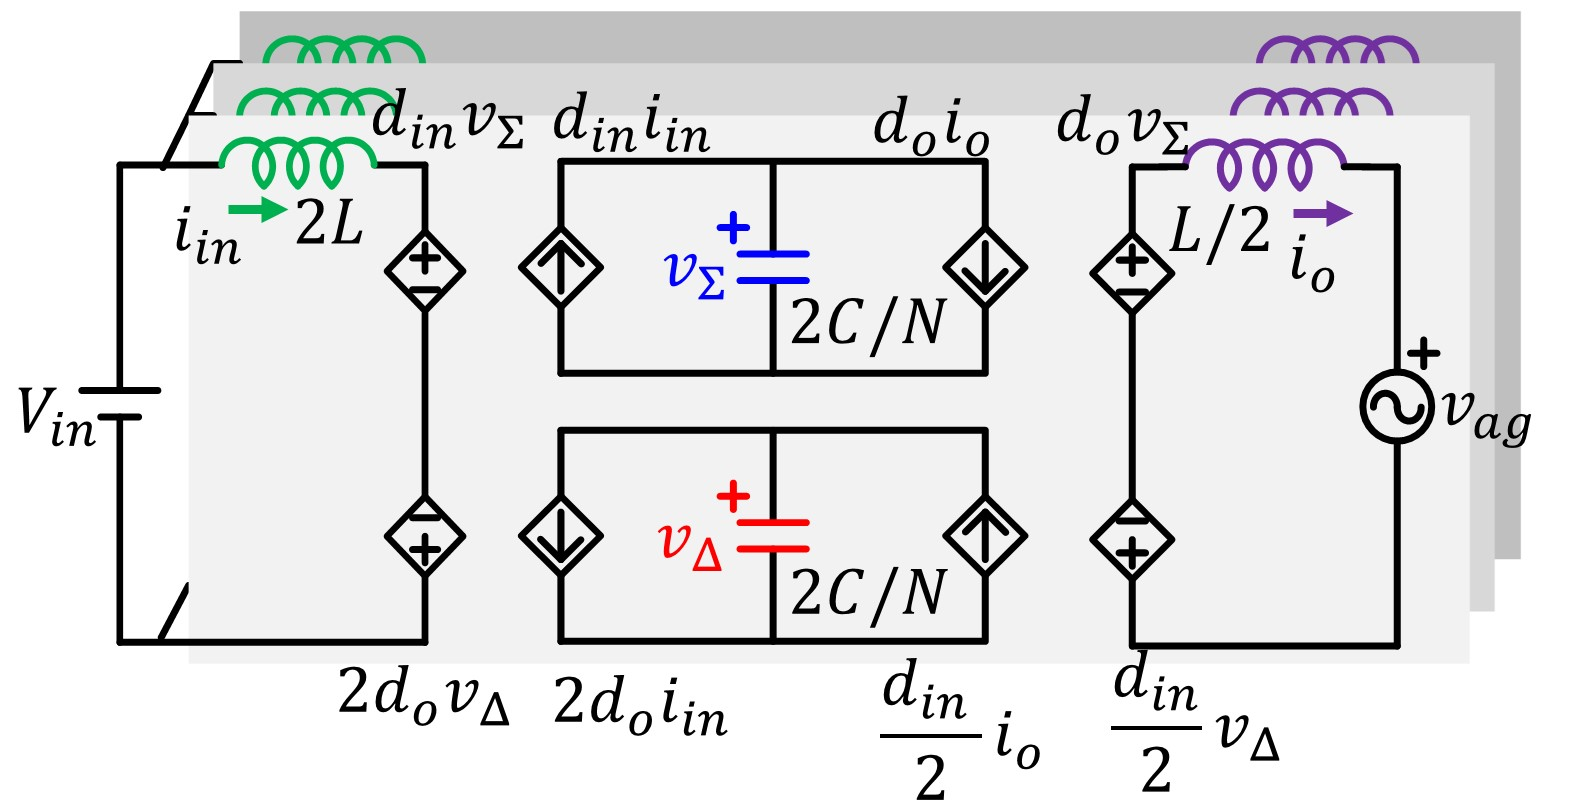 Image of proposed decoupled ΣΔ model.